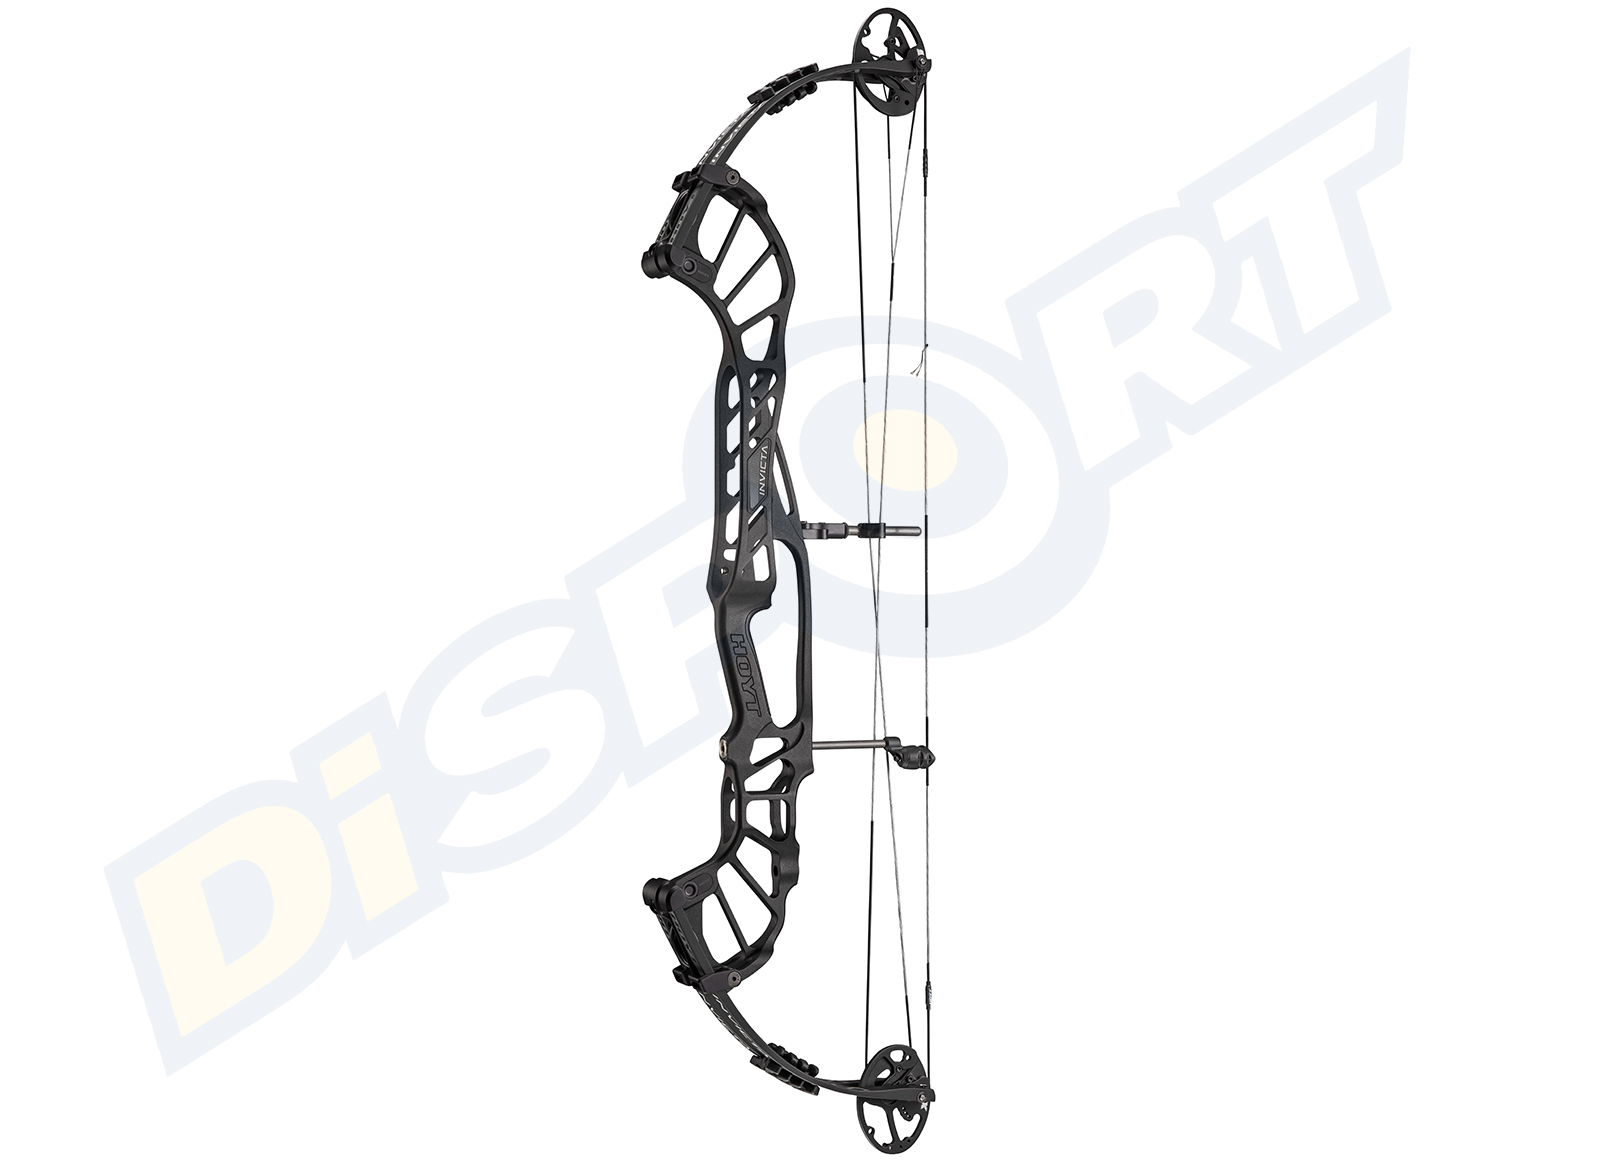 HOYT COMPOUND INVICTA 40 SVX 2020 BLACKOUT